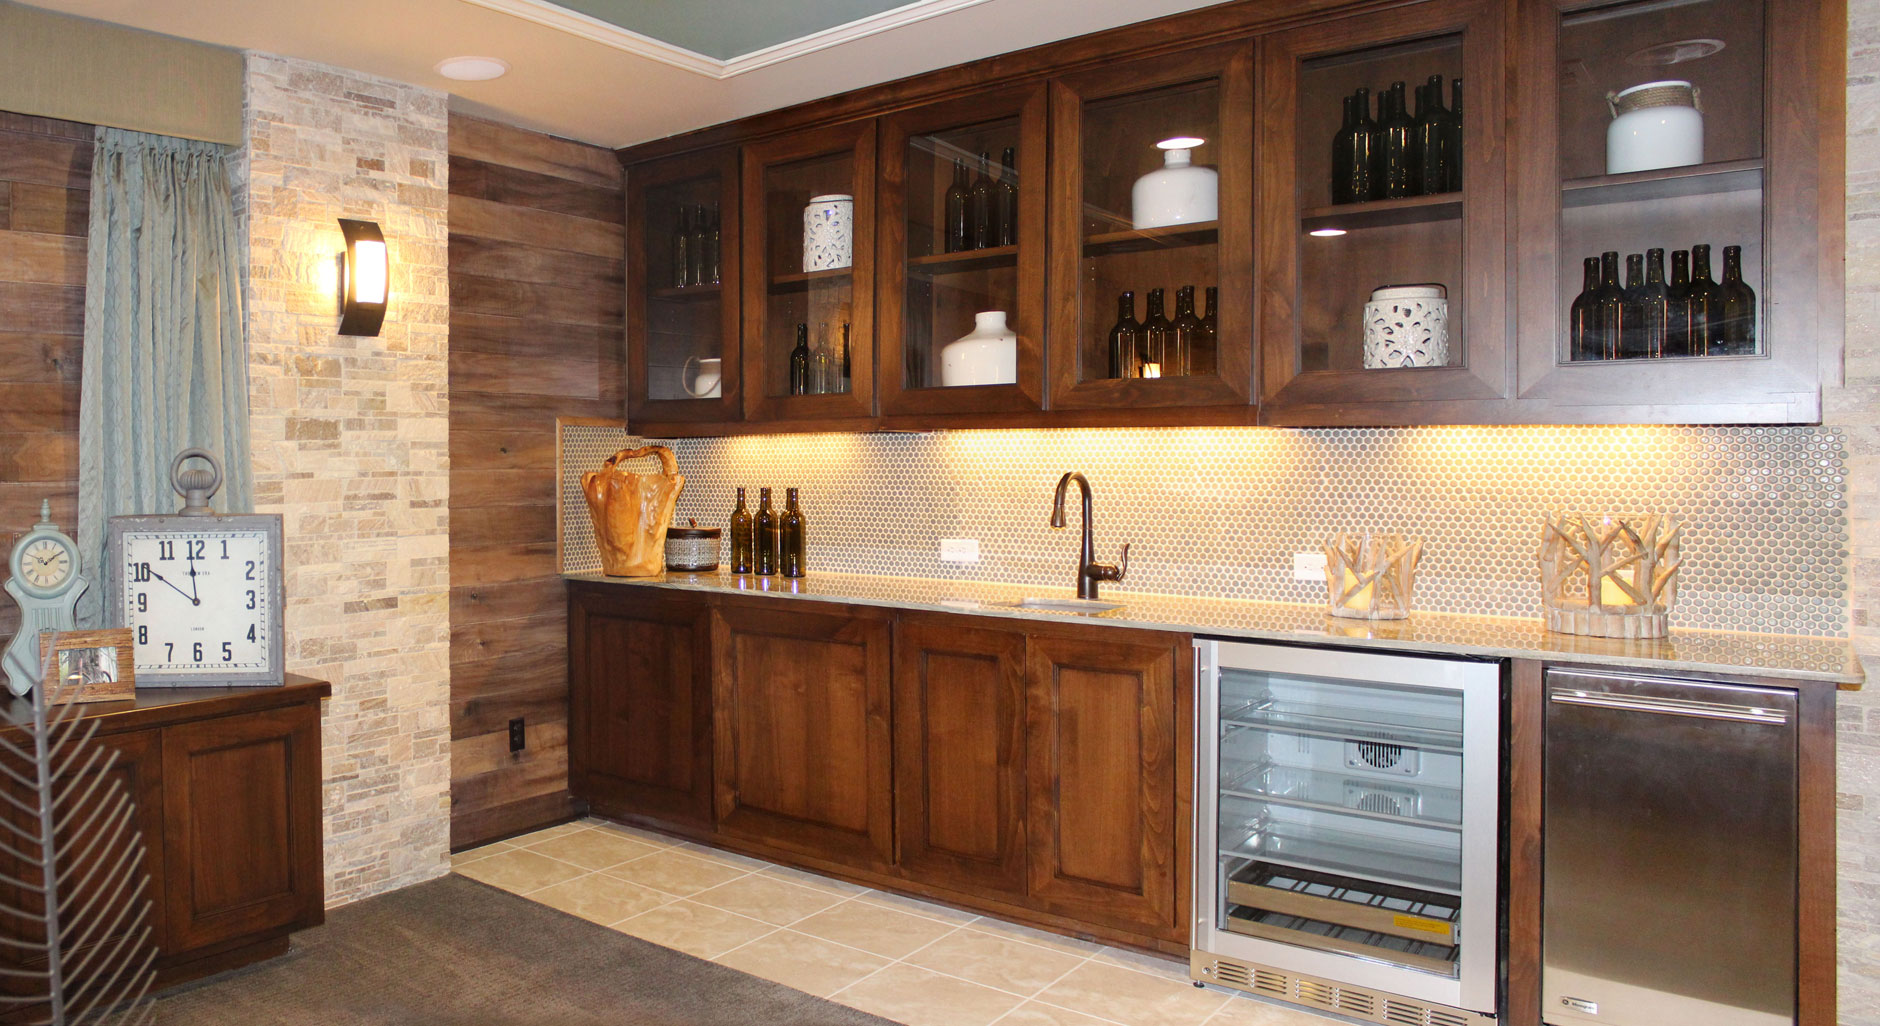 Wet bar cabinets in Terrazzo style by Burrows Cabinets